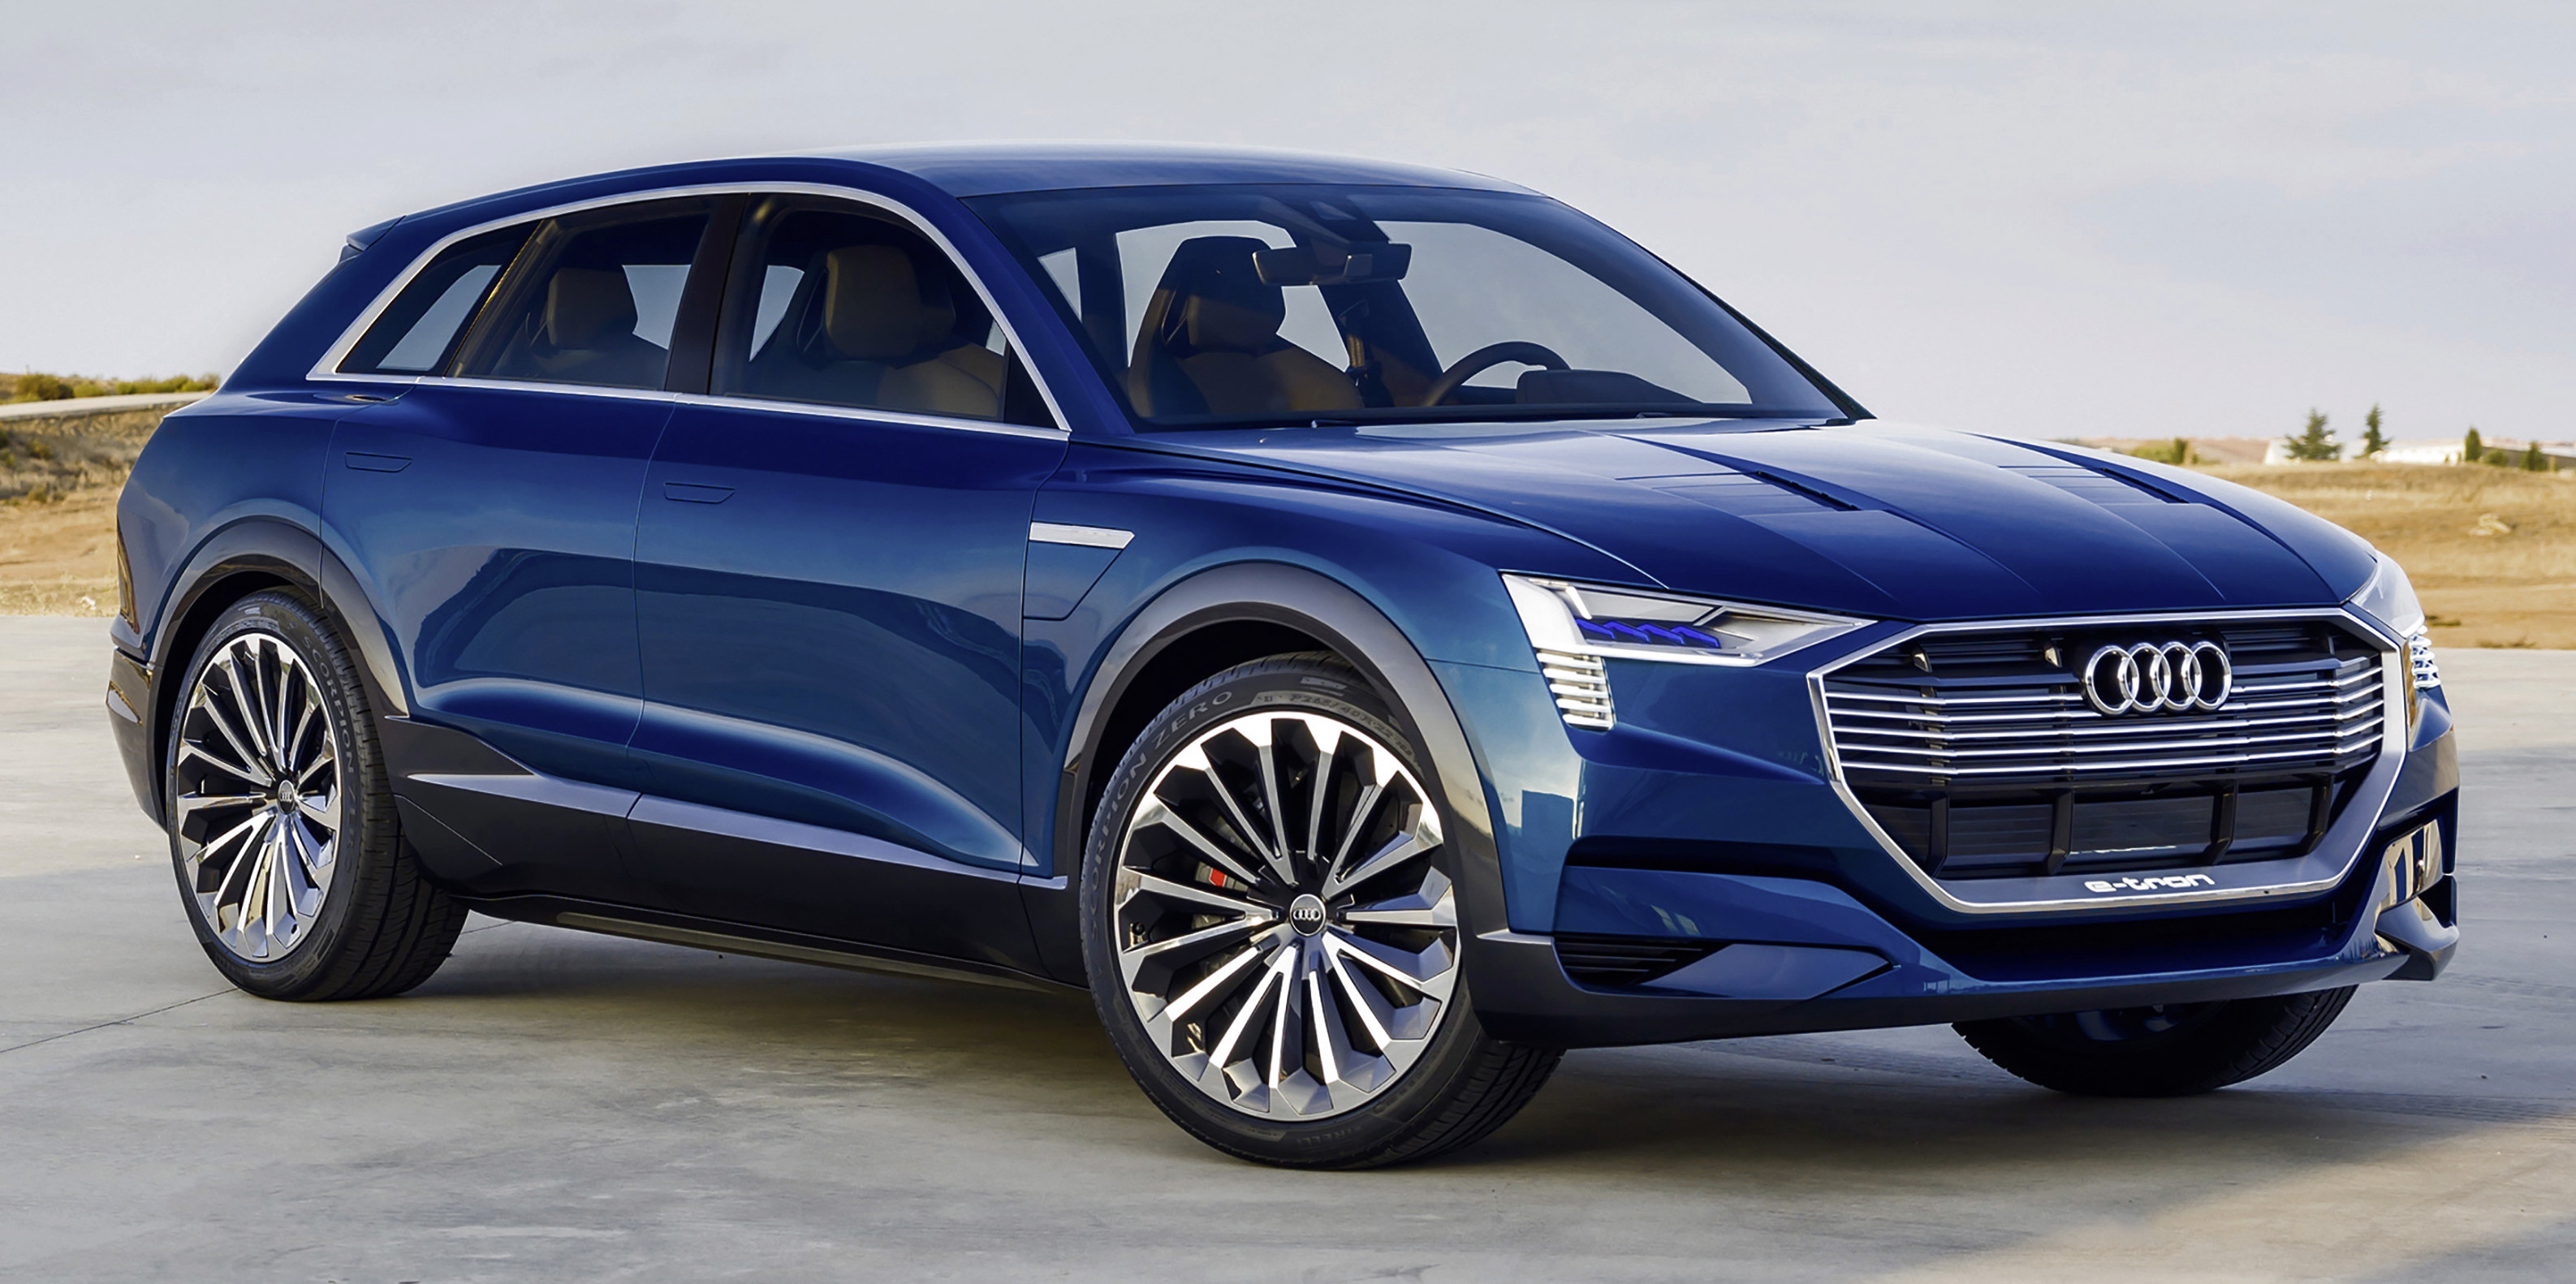 High Quality Audi Working On Own U201cLudicrous Modeu201d For Future EVs